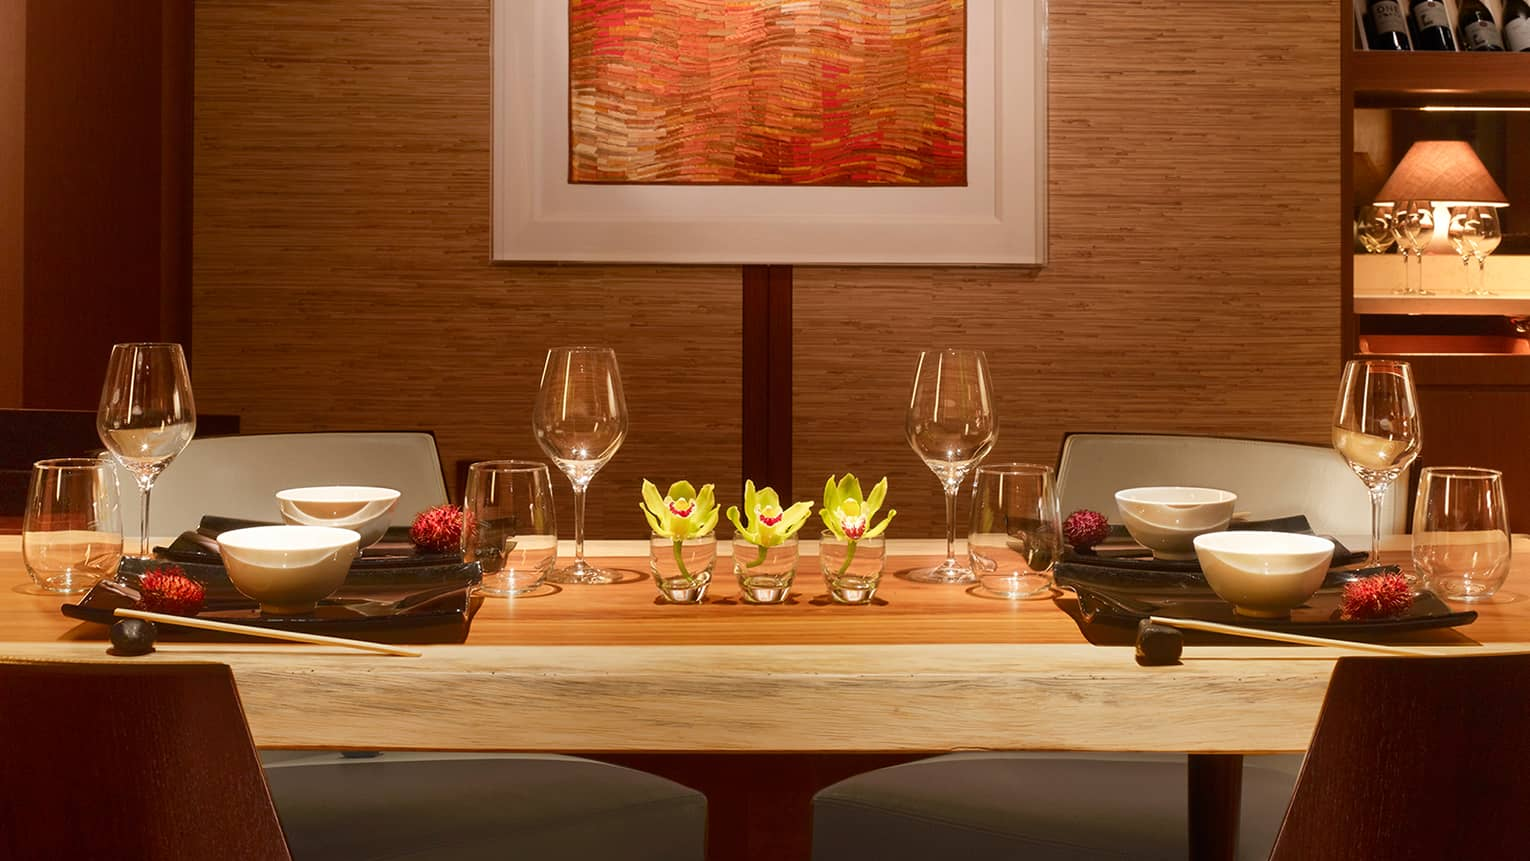 Long rustic wood private dining table with wine glasses, yellow flowers under wall with orange art